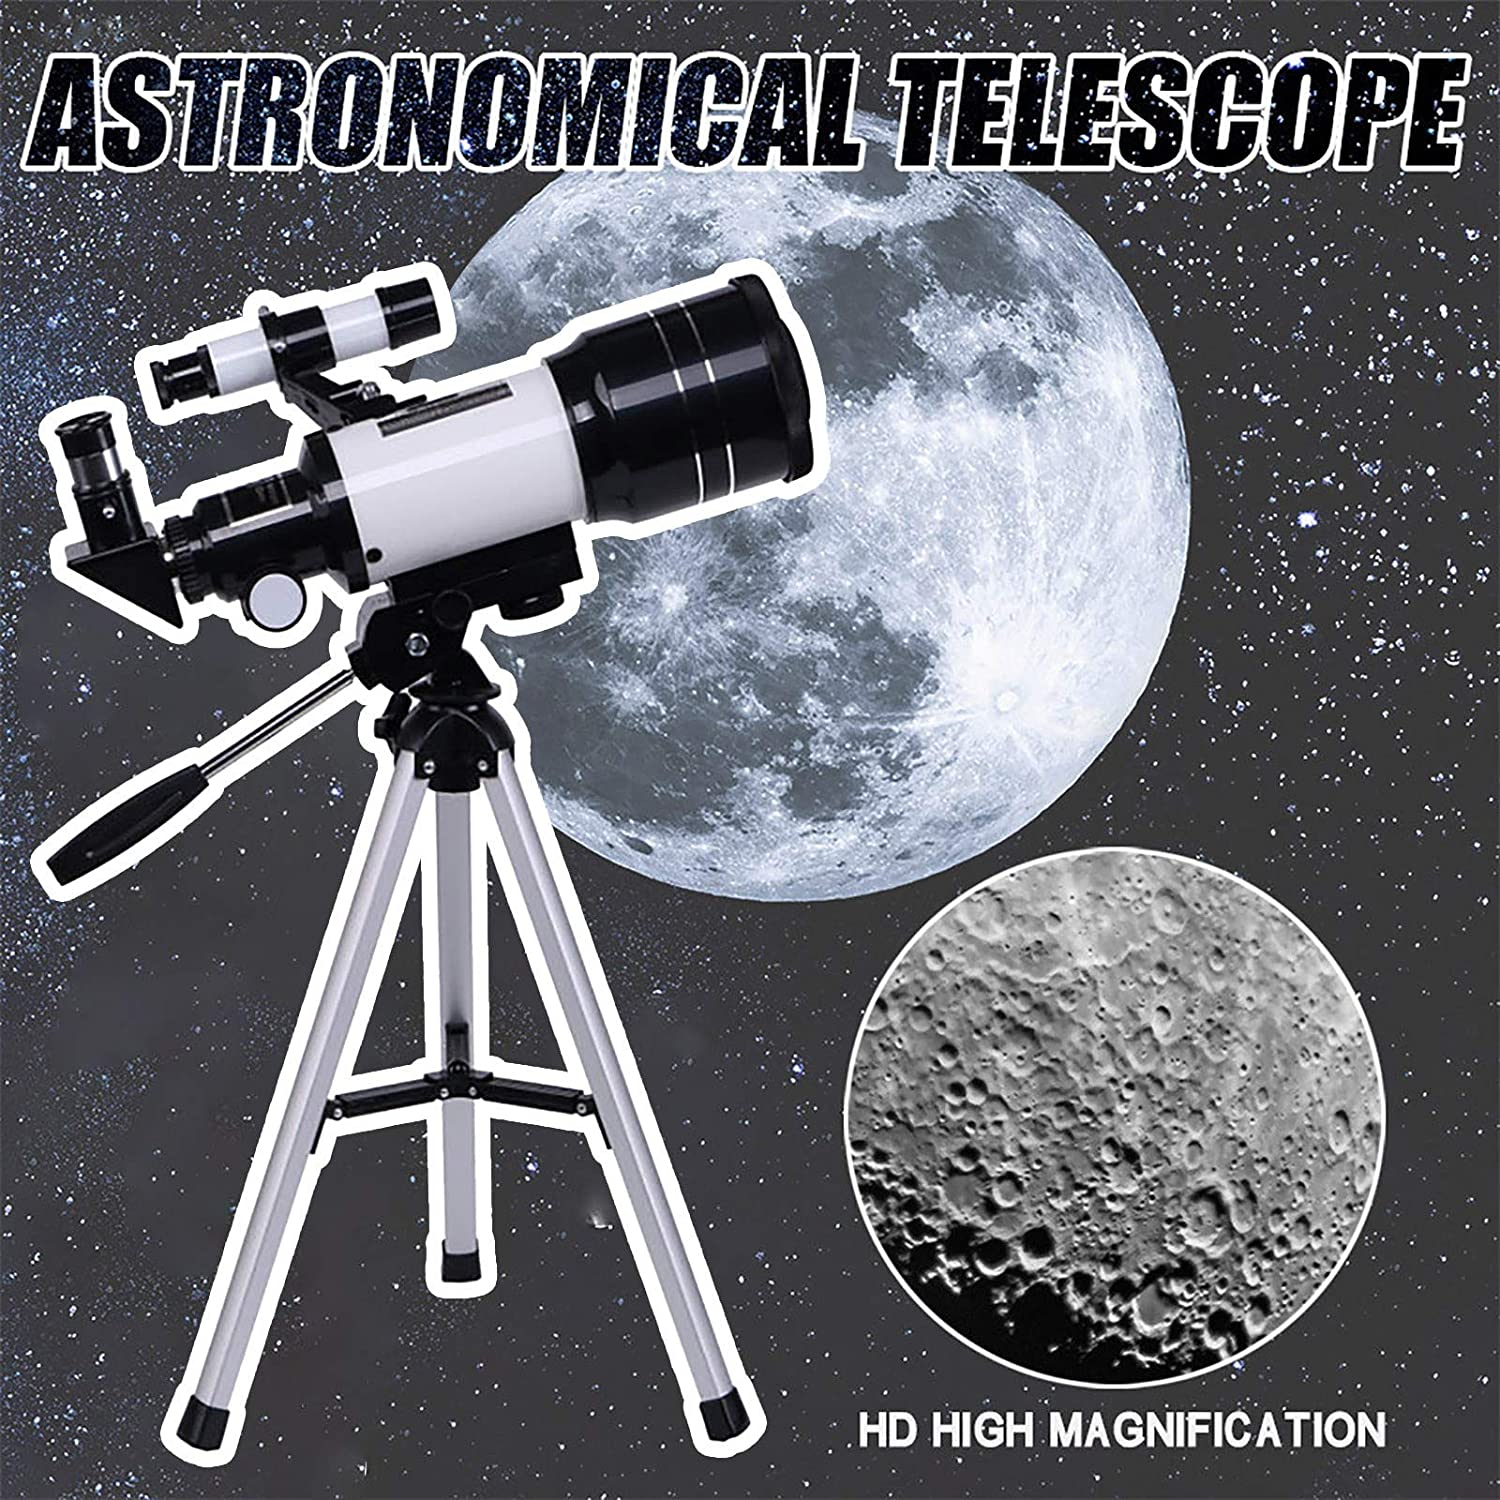 Barcley Explore Astronomy and Terrestrial Telescope for Beginners Kids Adults,High Power Easy Focus Binoculars,Travel Telescope with Tripod Carry Bag,Ideal Birthday Space Gift